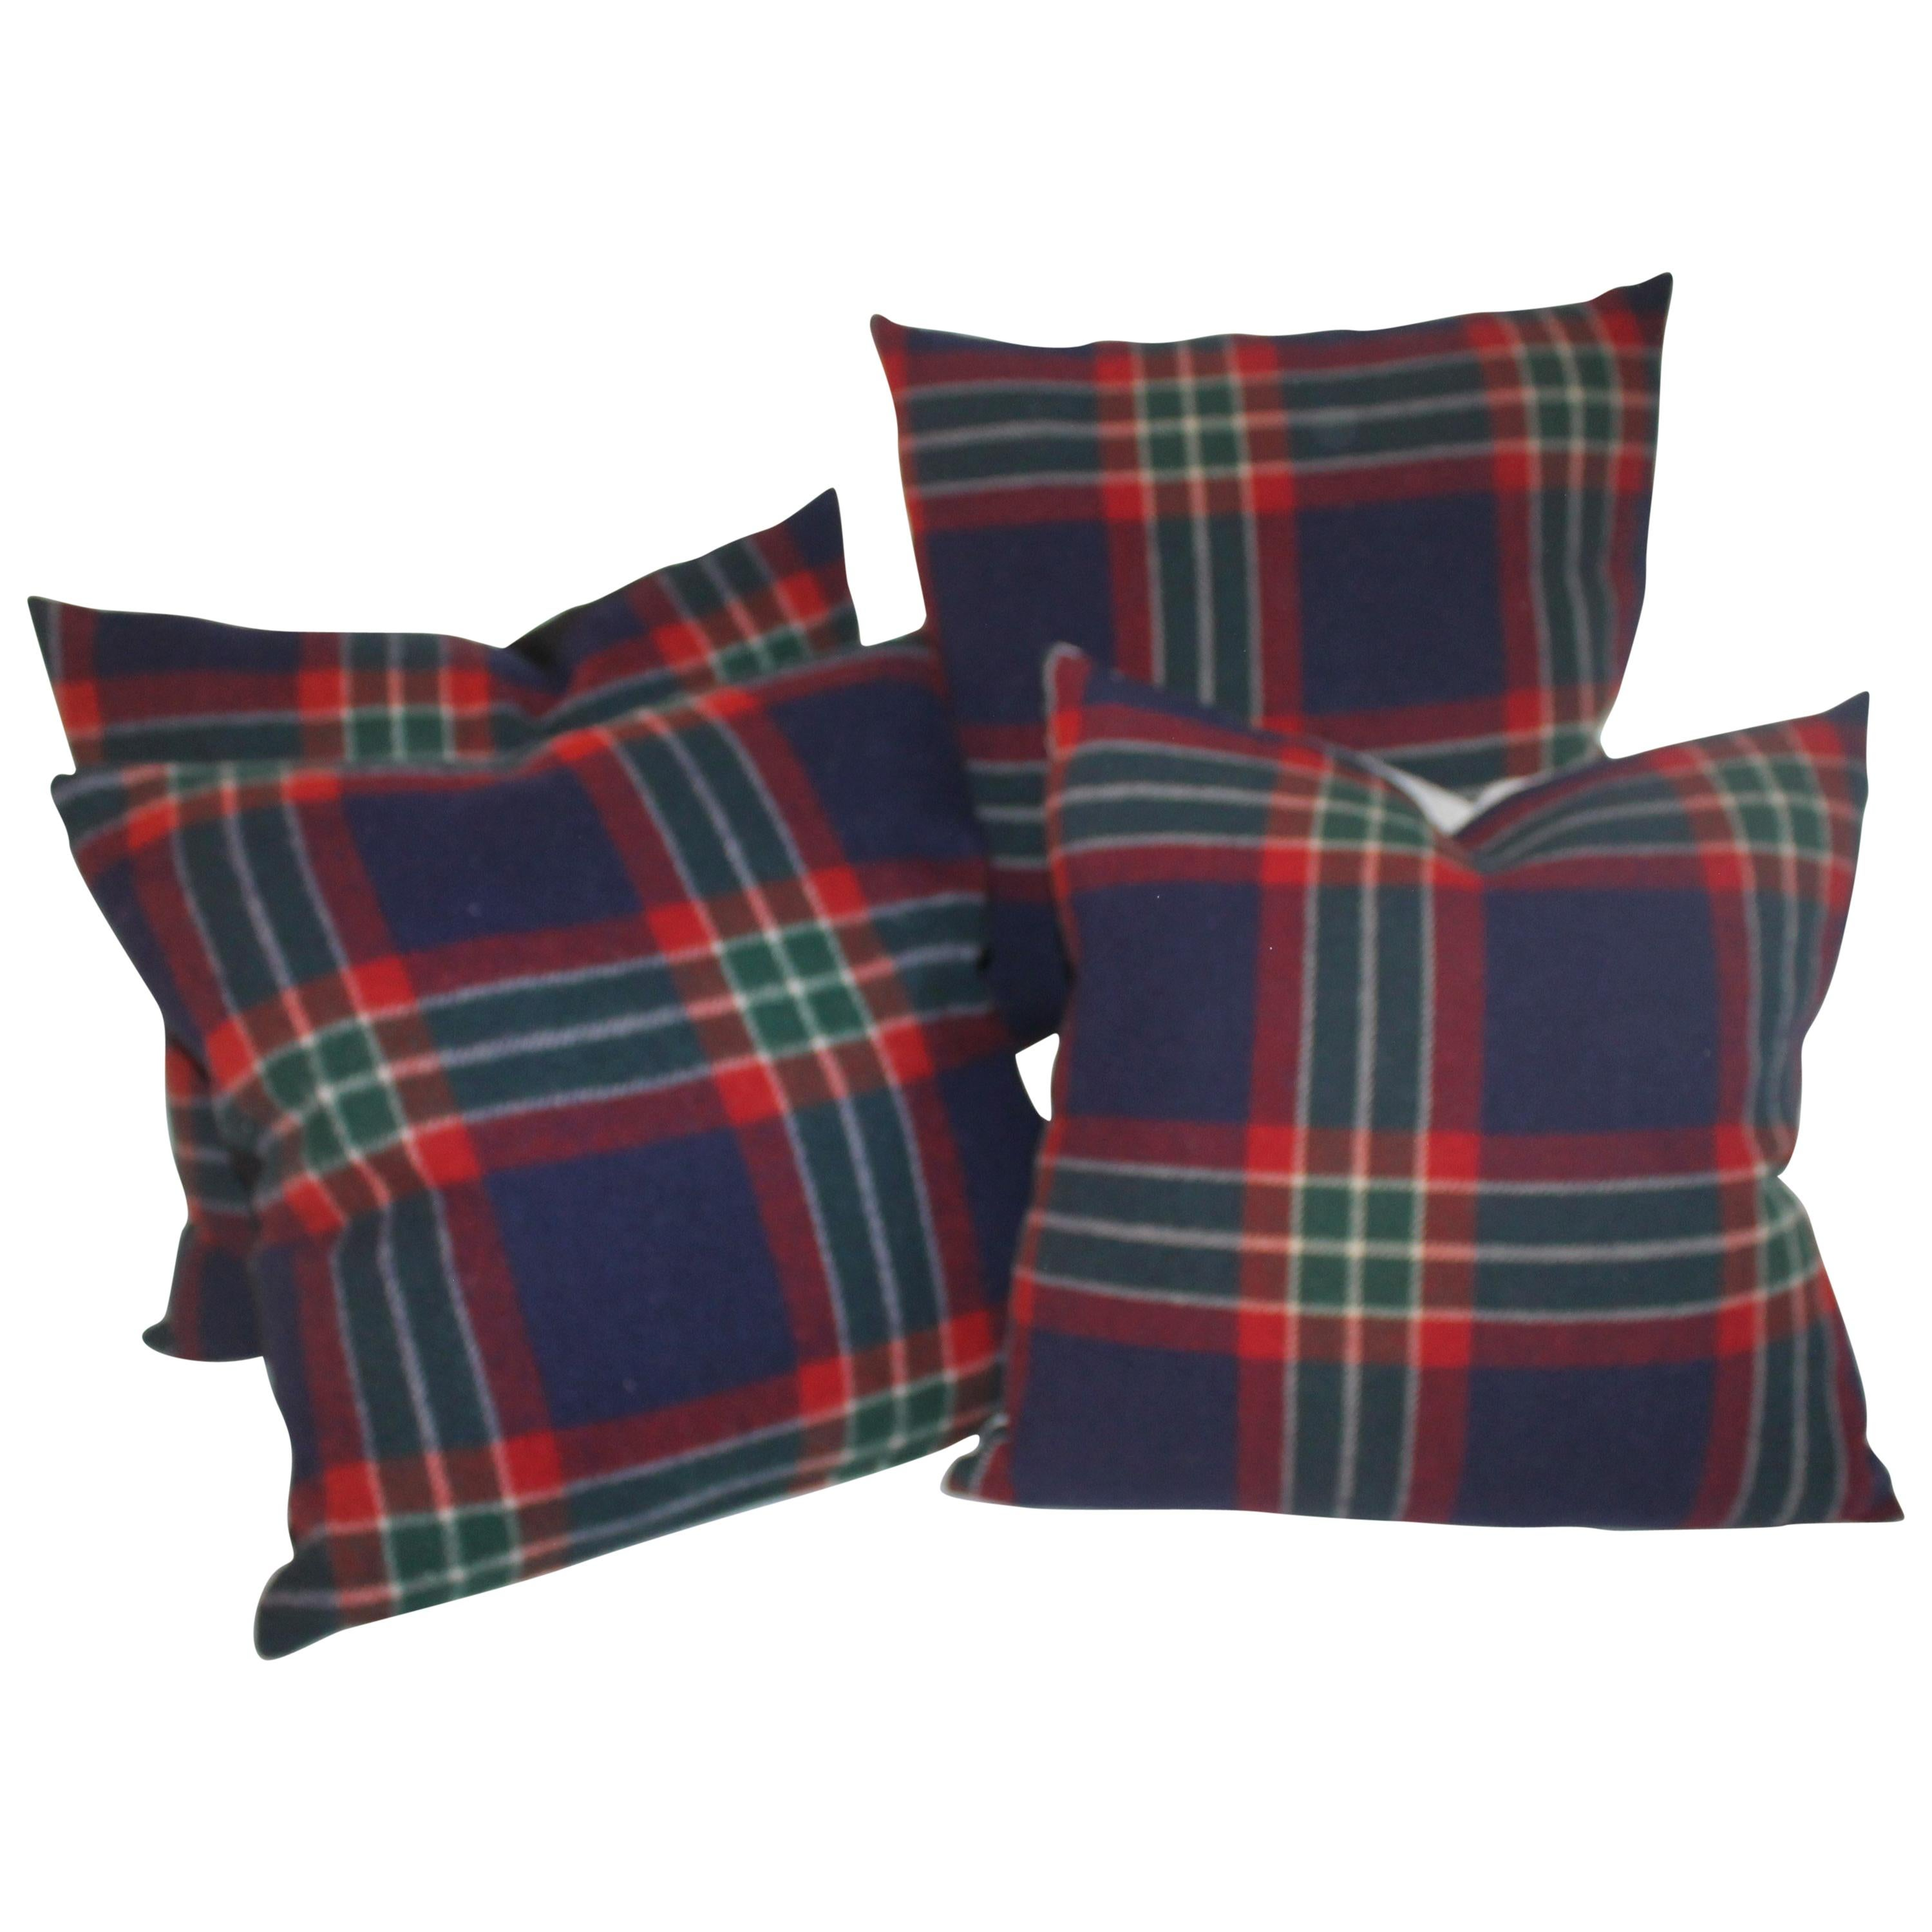 Collection of Four Plaid Blanket Pillows / 4